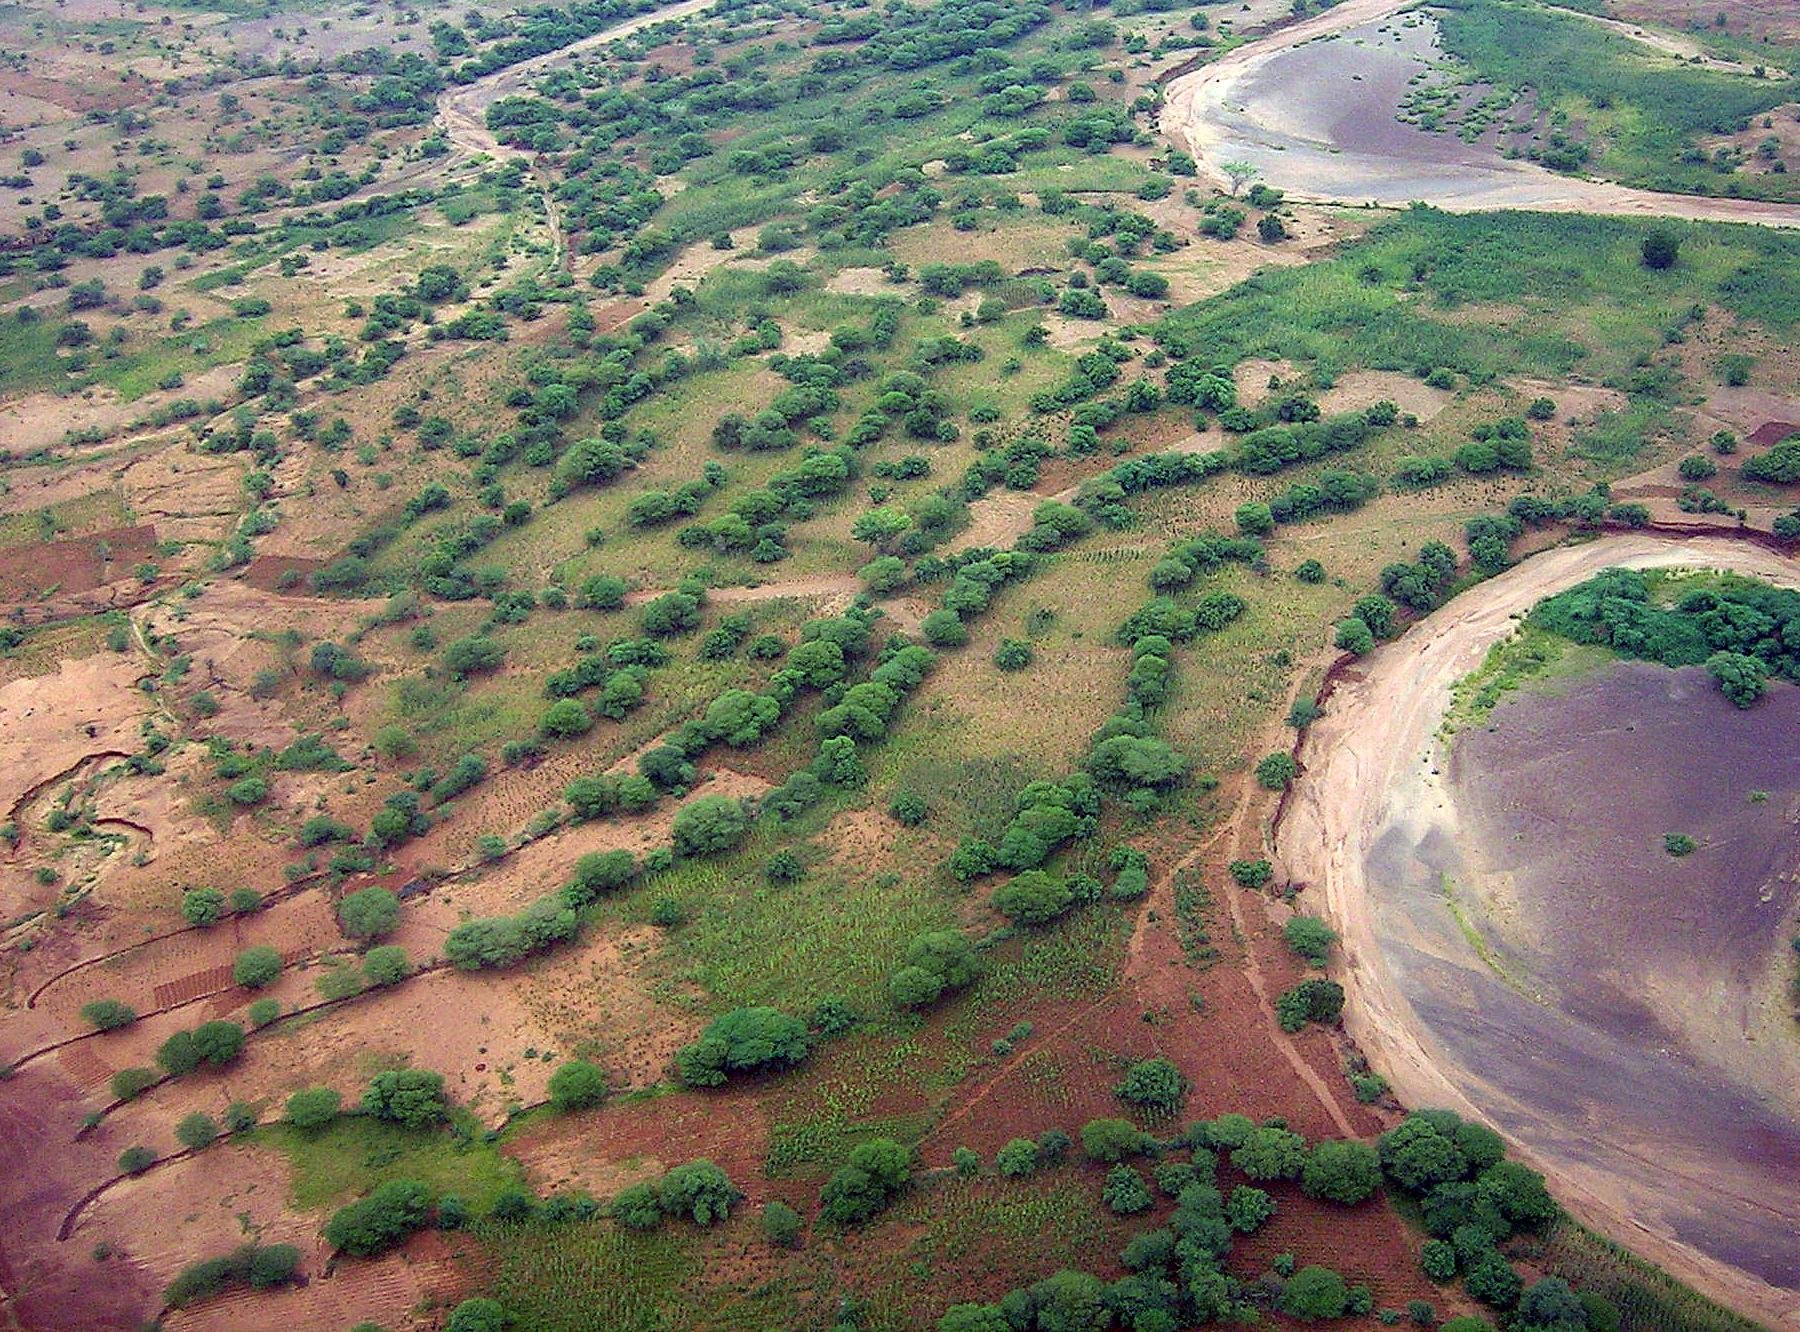 Aerial view near Madaoua, Niger of regeneration of trees along rock lines on the contour. Rainfall is captured, runoff and erosion are minimized, and crop production is increased. ©Gray Tappan/USGS